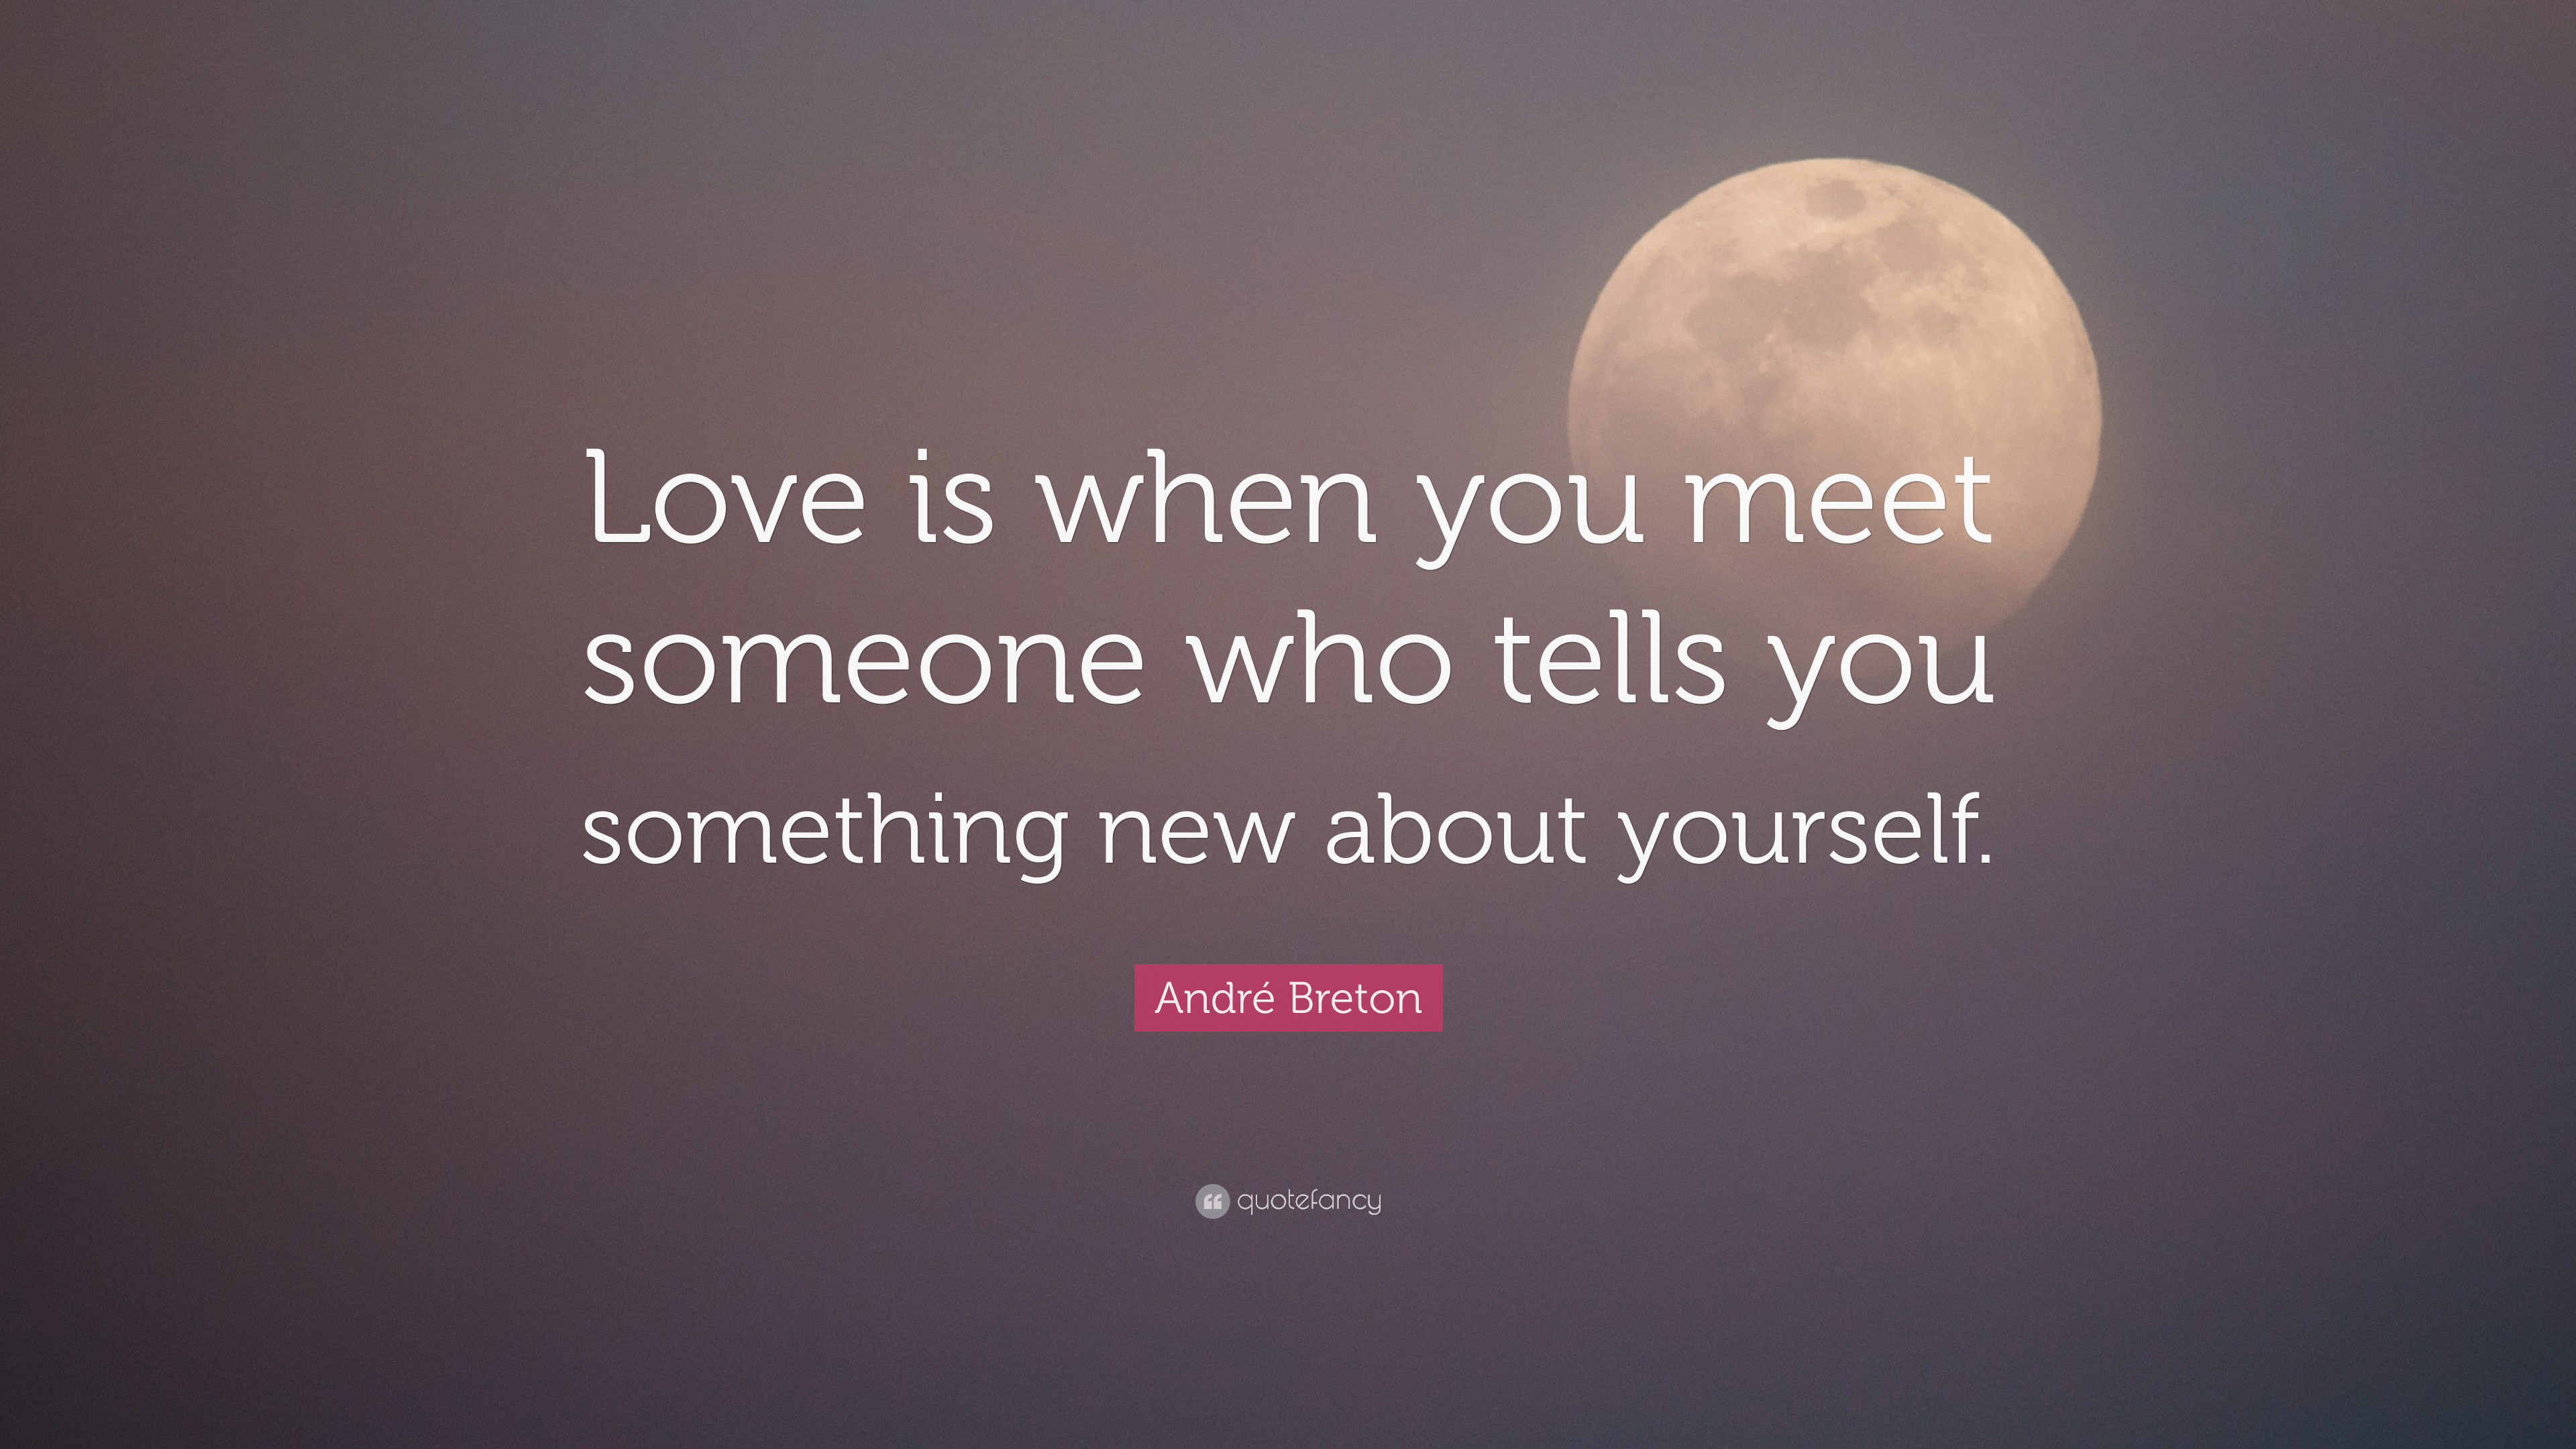 André Breton Quote: Love is when you meet someone who